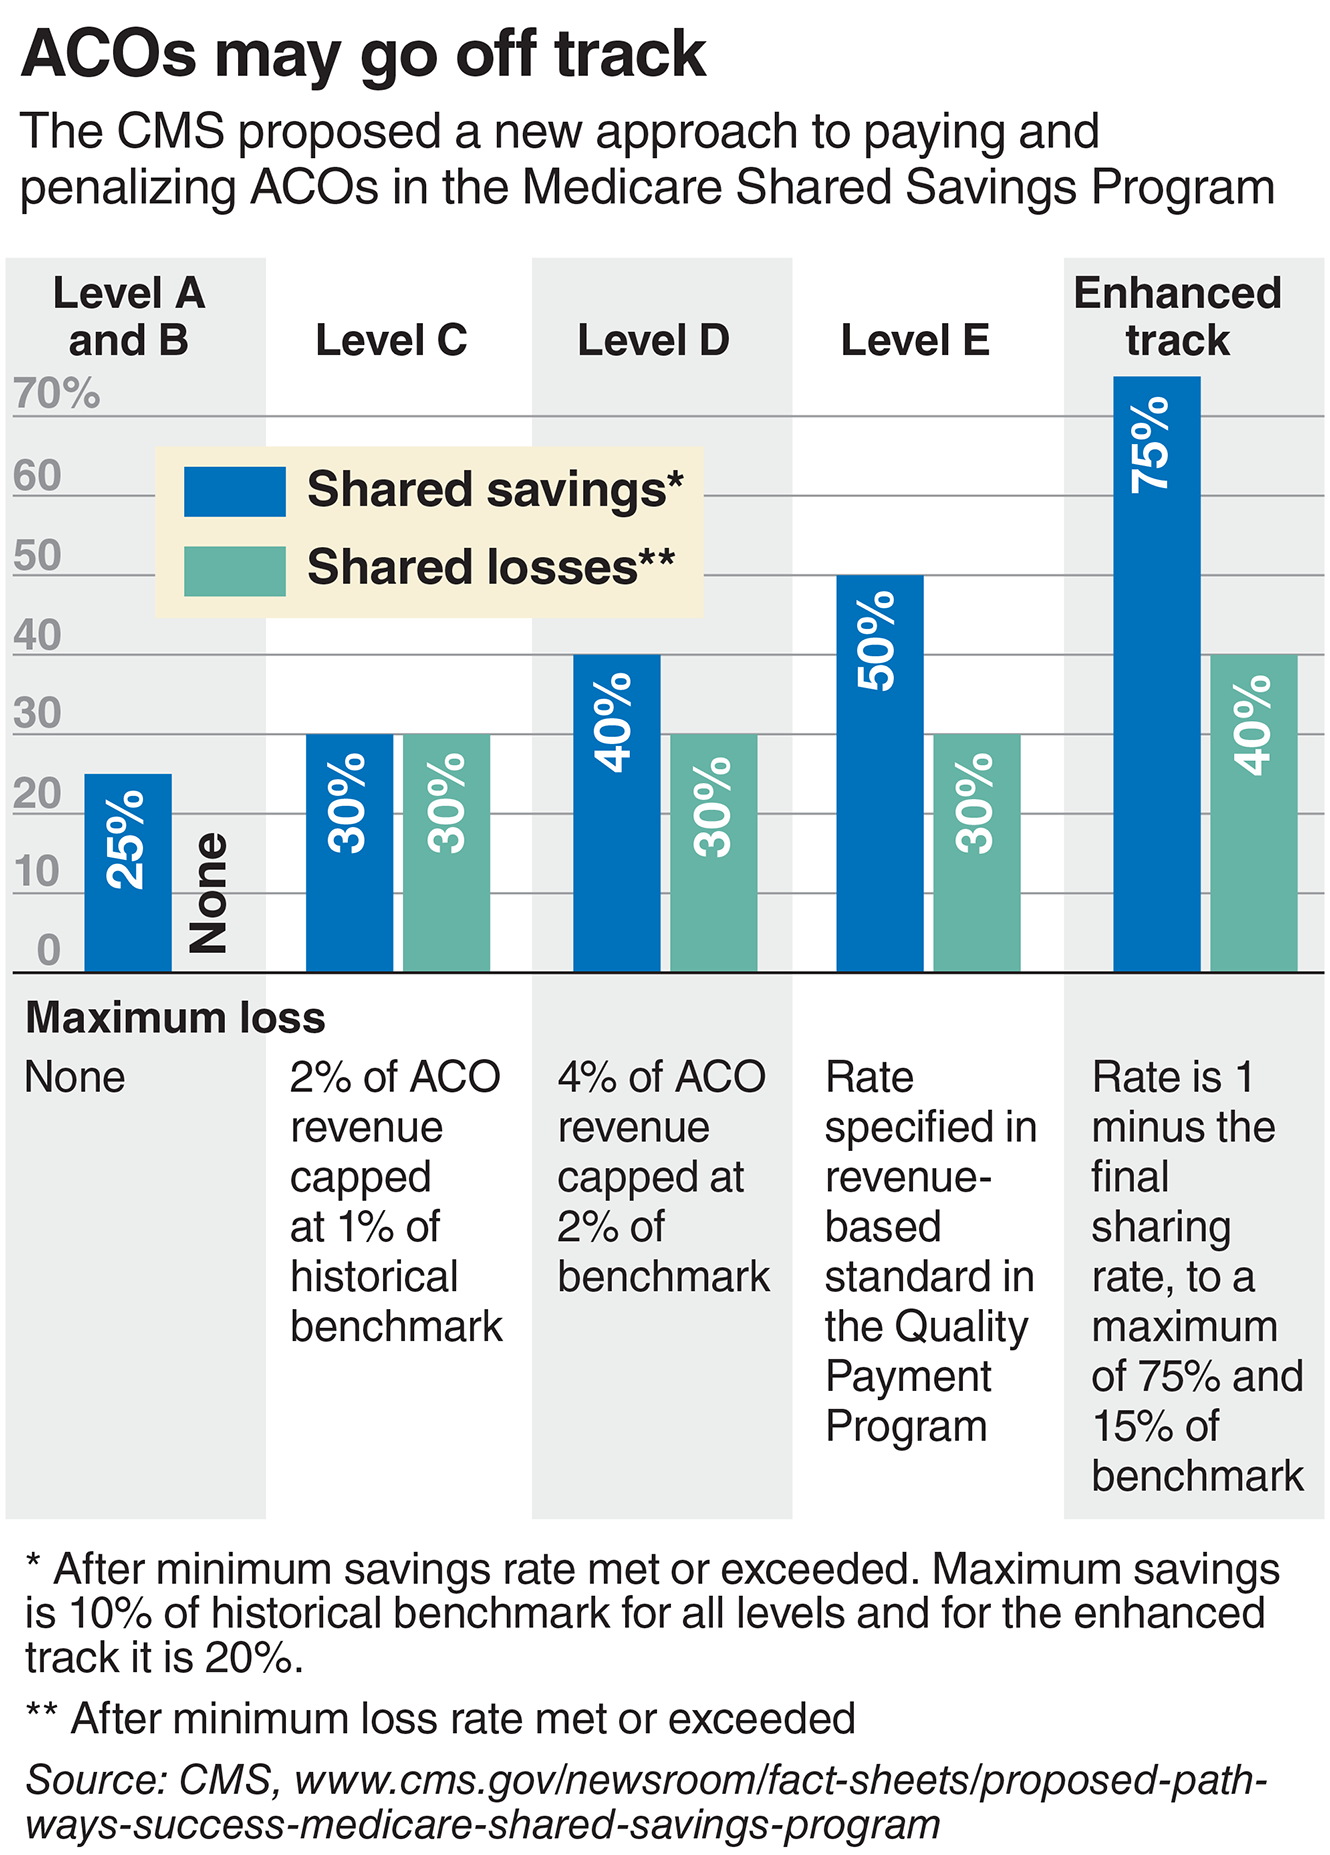 ACOs may go off track